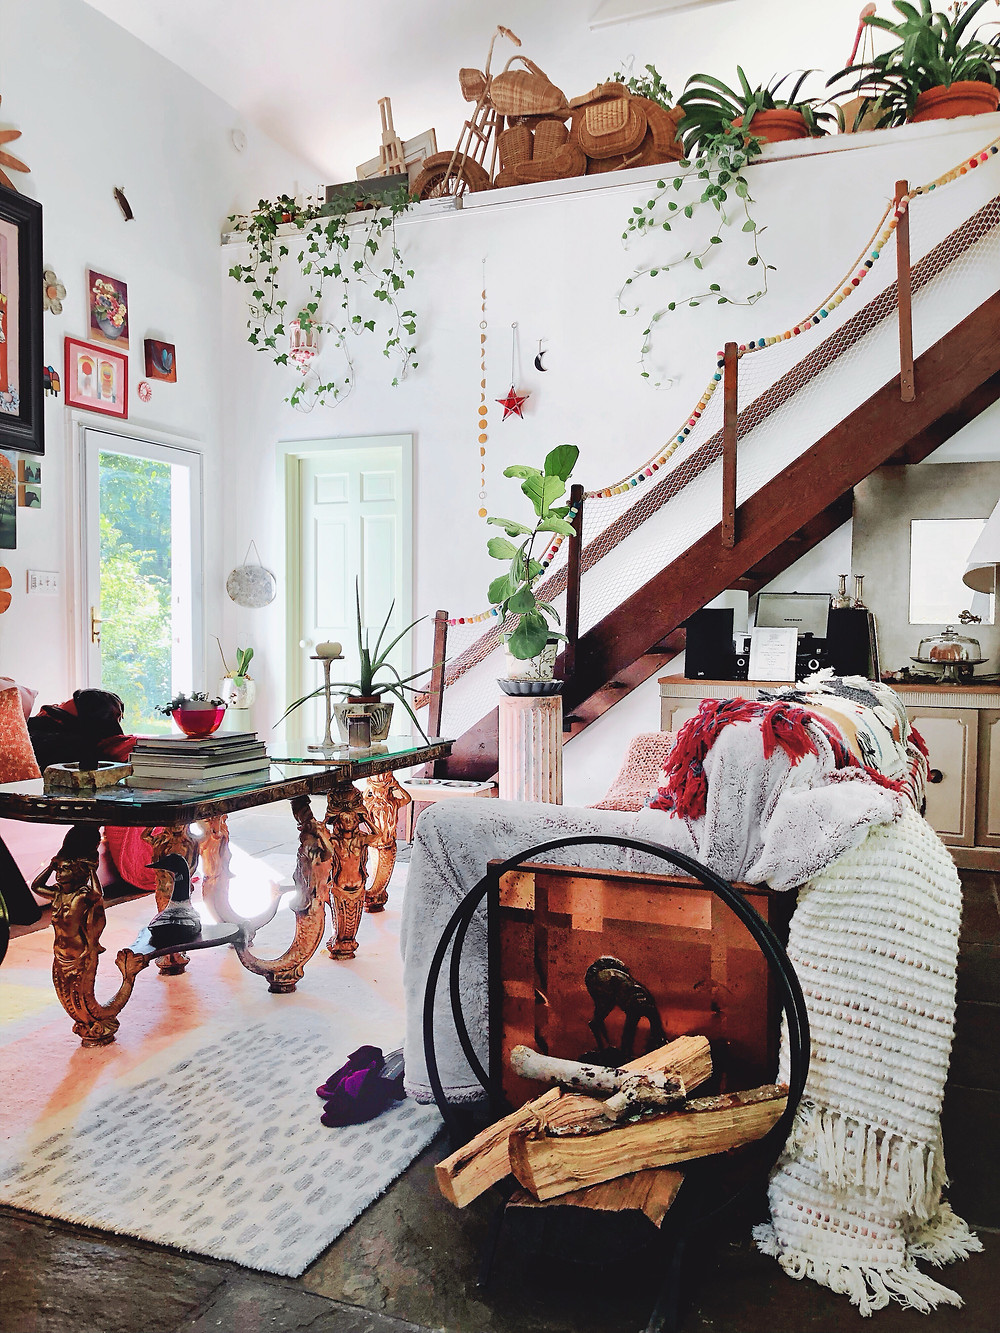 Plants dangling from ledge in living room, log pile ready, mermaid coffee table